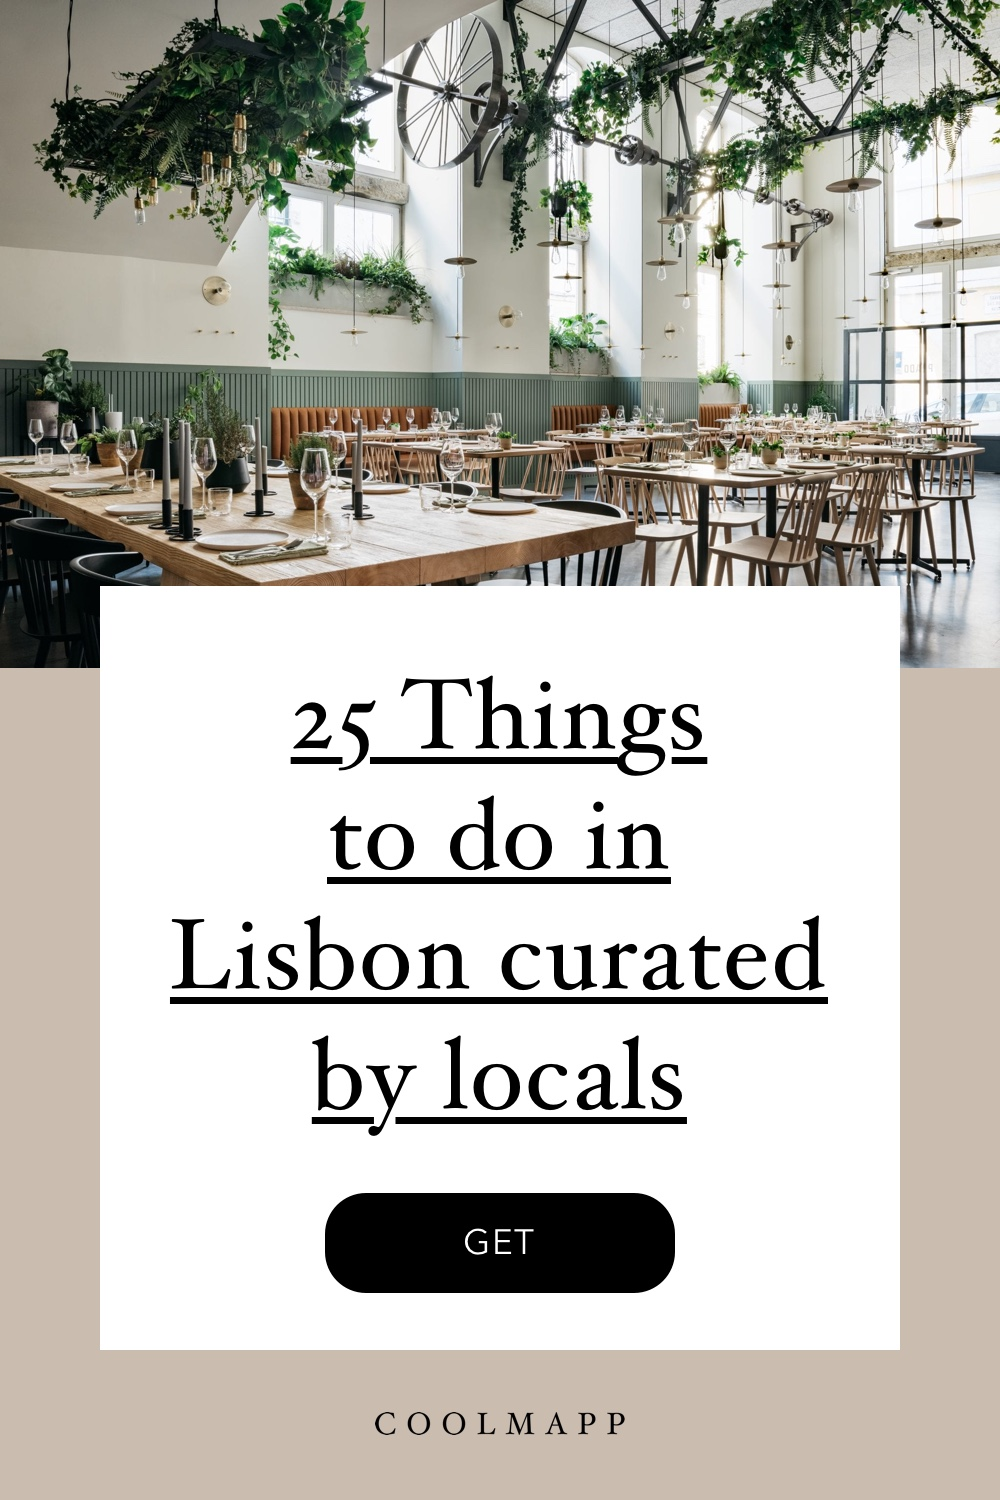 25 cool things to do in Lisbon - like restaurants, coffeeshops, bars, hotels, apartments, etc